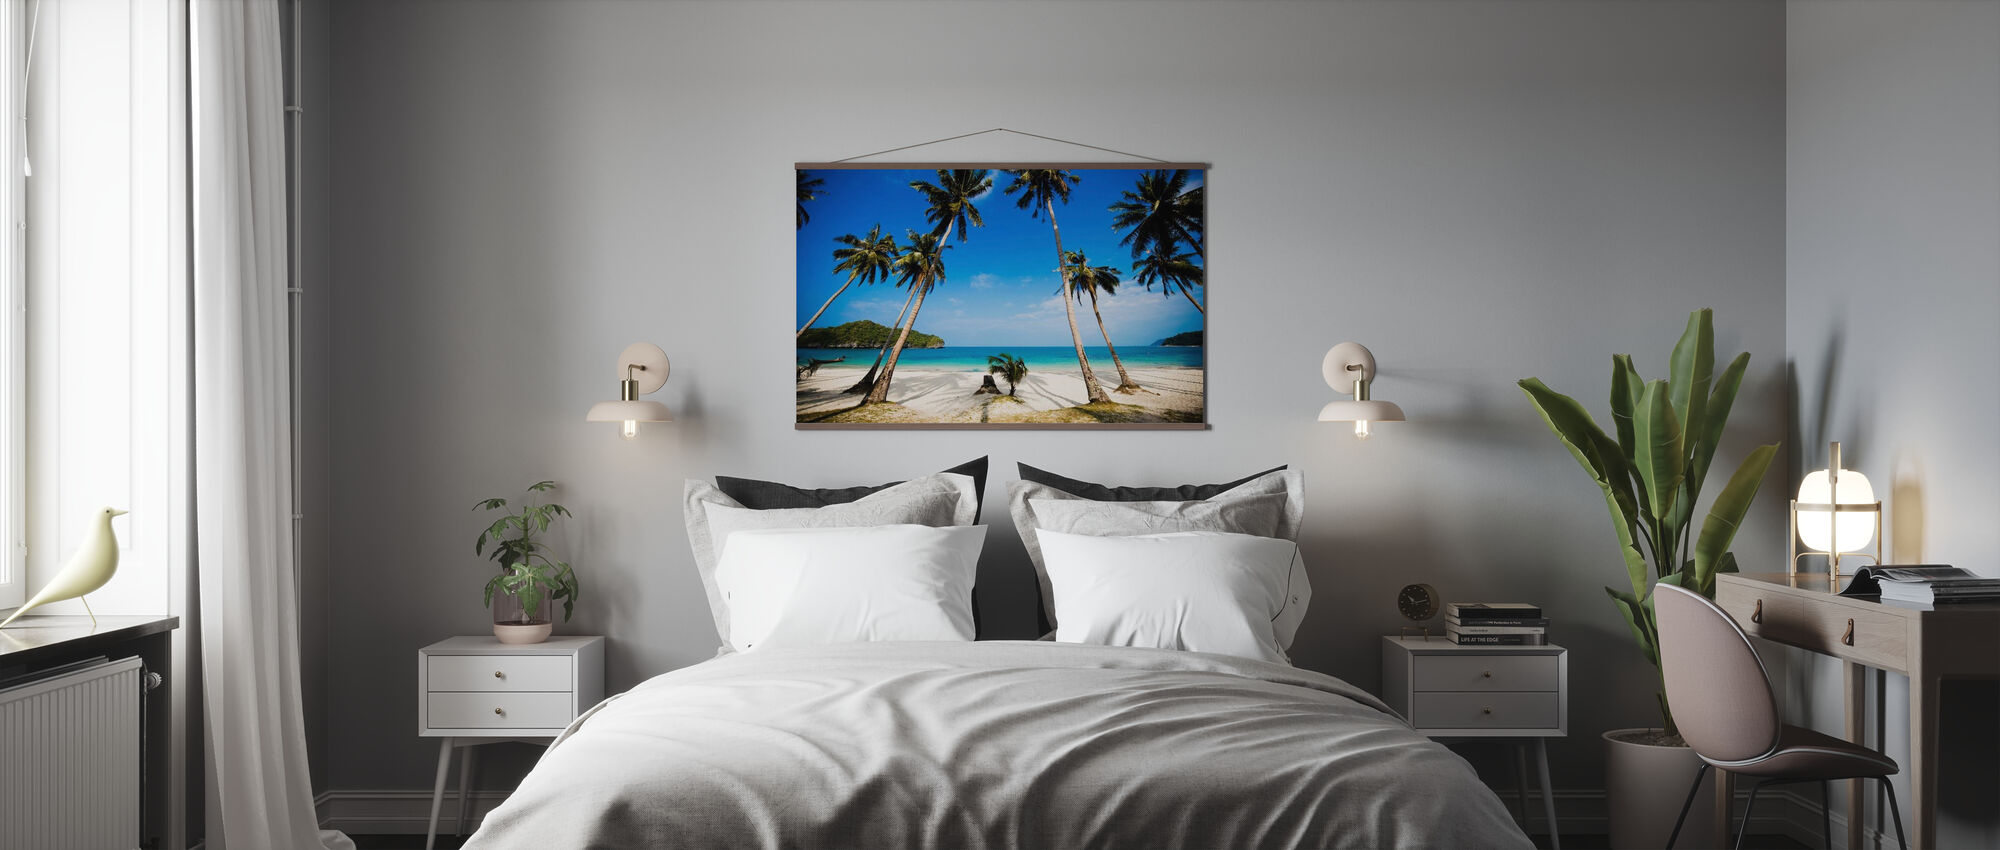 Coconut Palms, Thailand - Poster - Bedroom